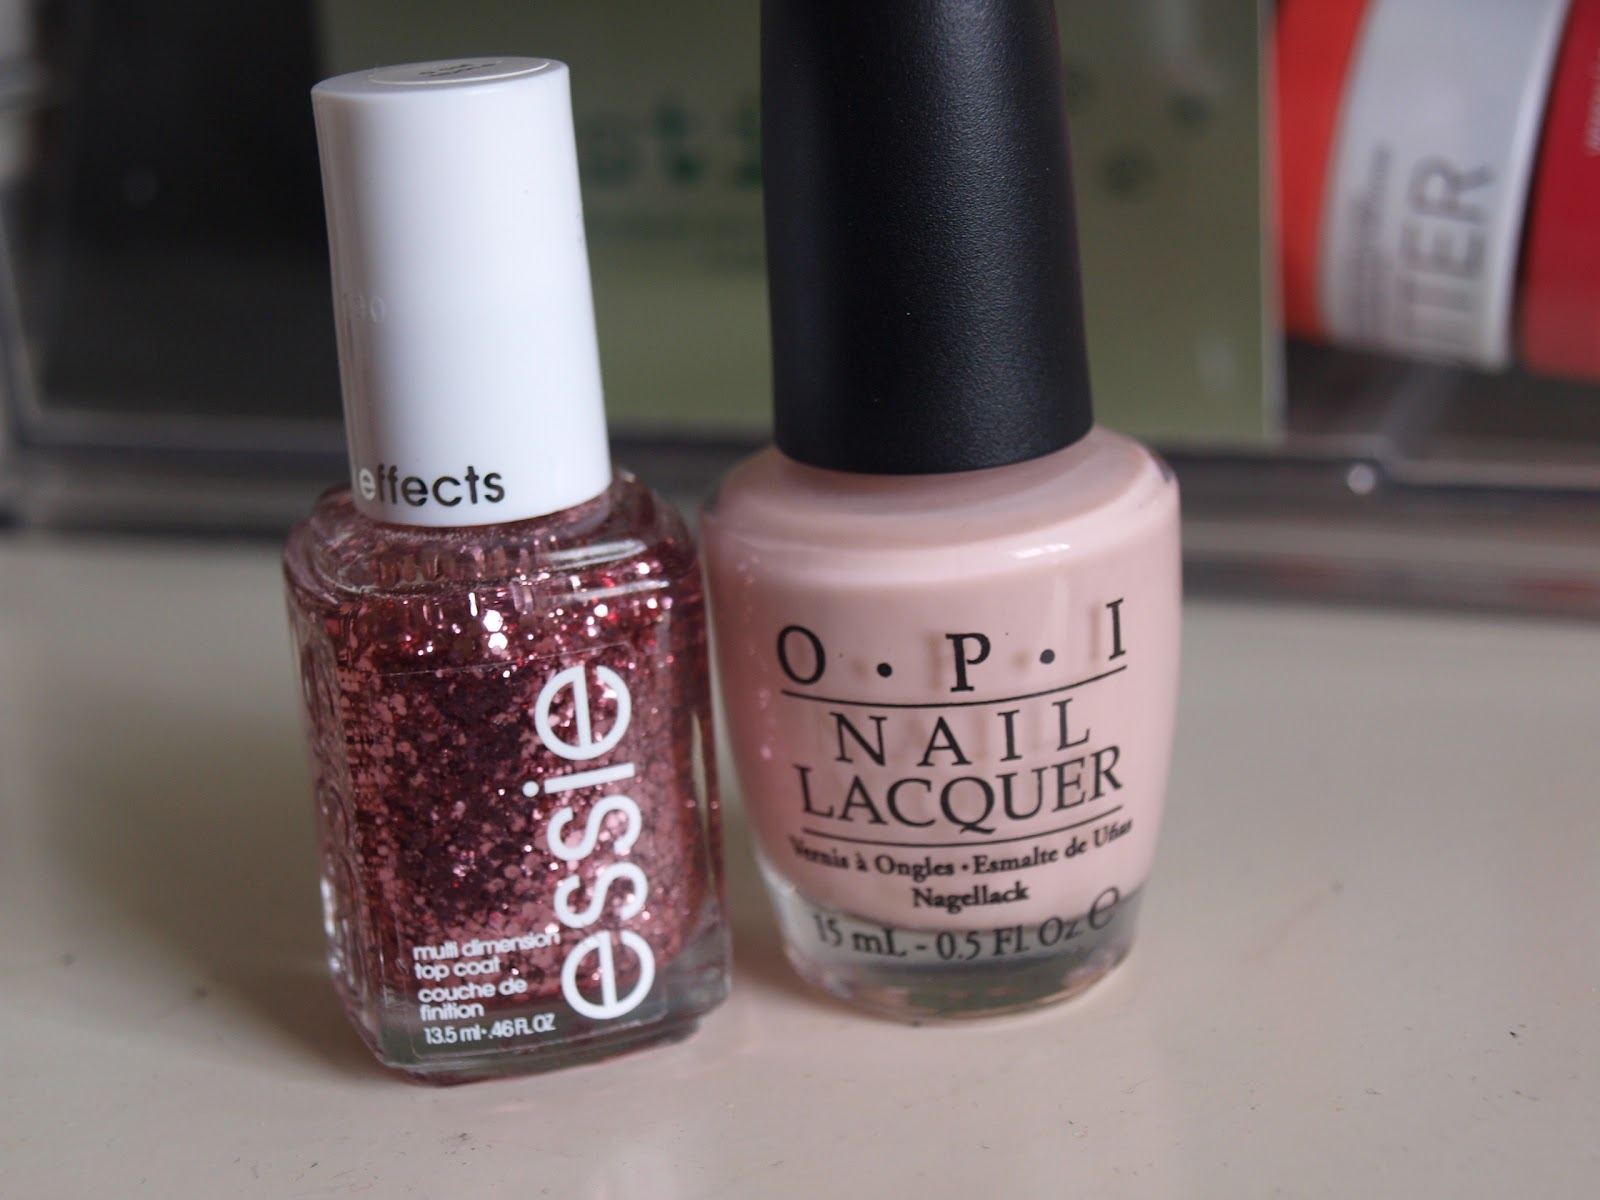 Fabuleux See it, Love it, Swatch it.: NOTD: OPI Sweet Heart & Essie A cut Above ER92